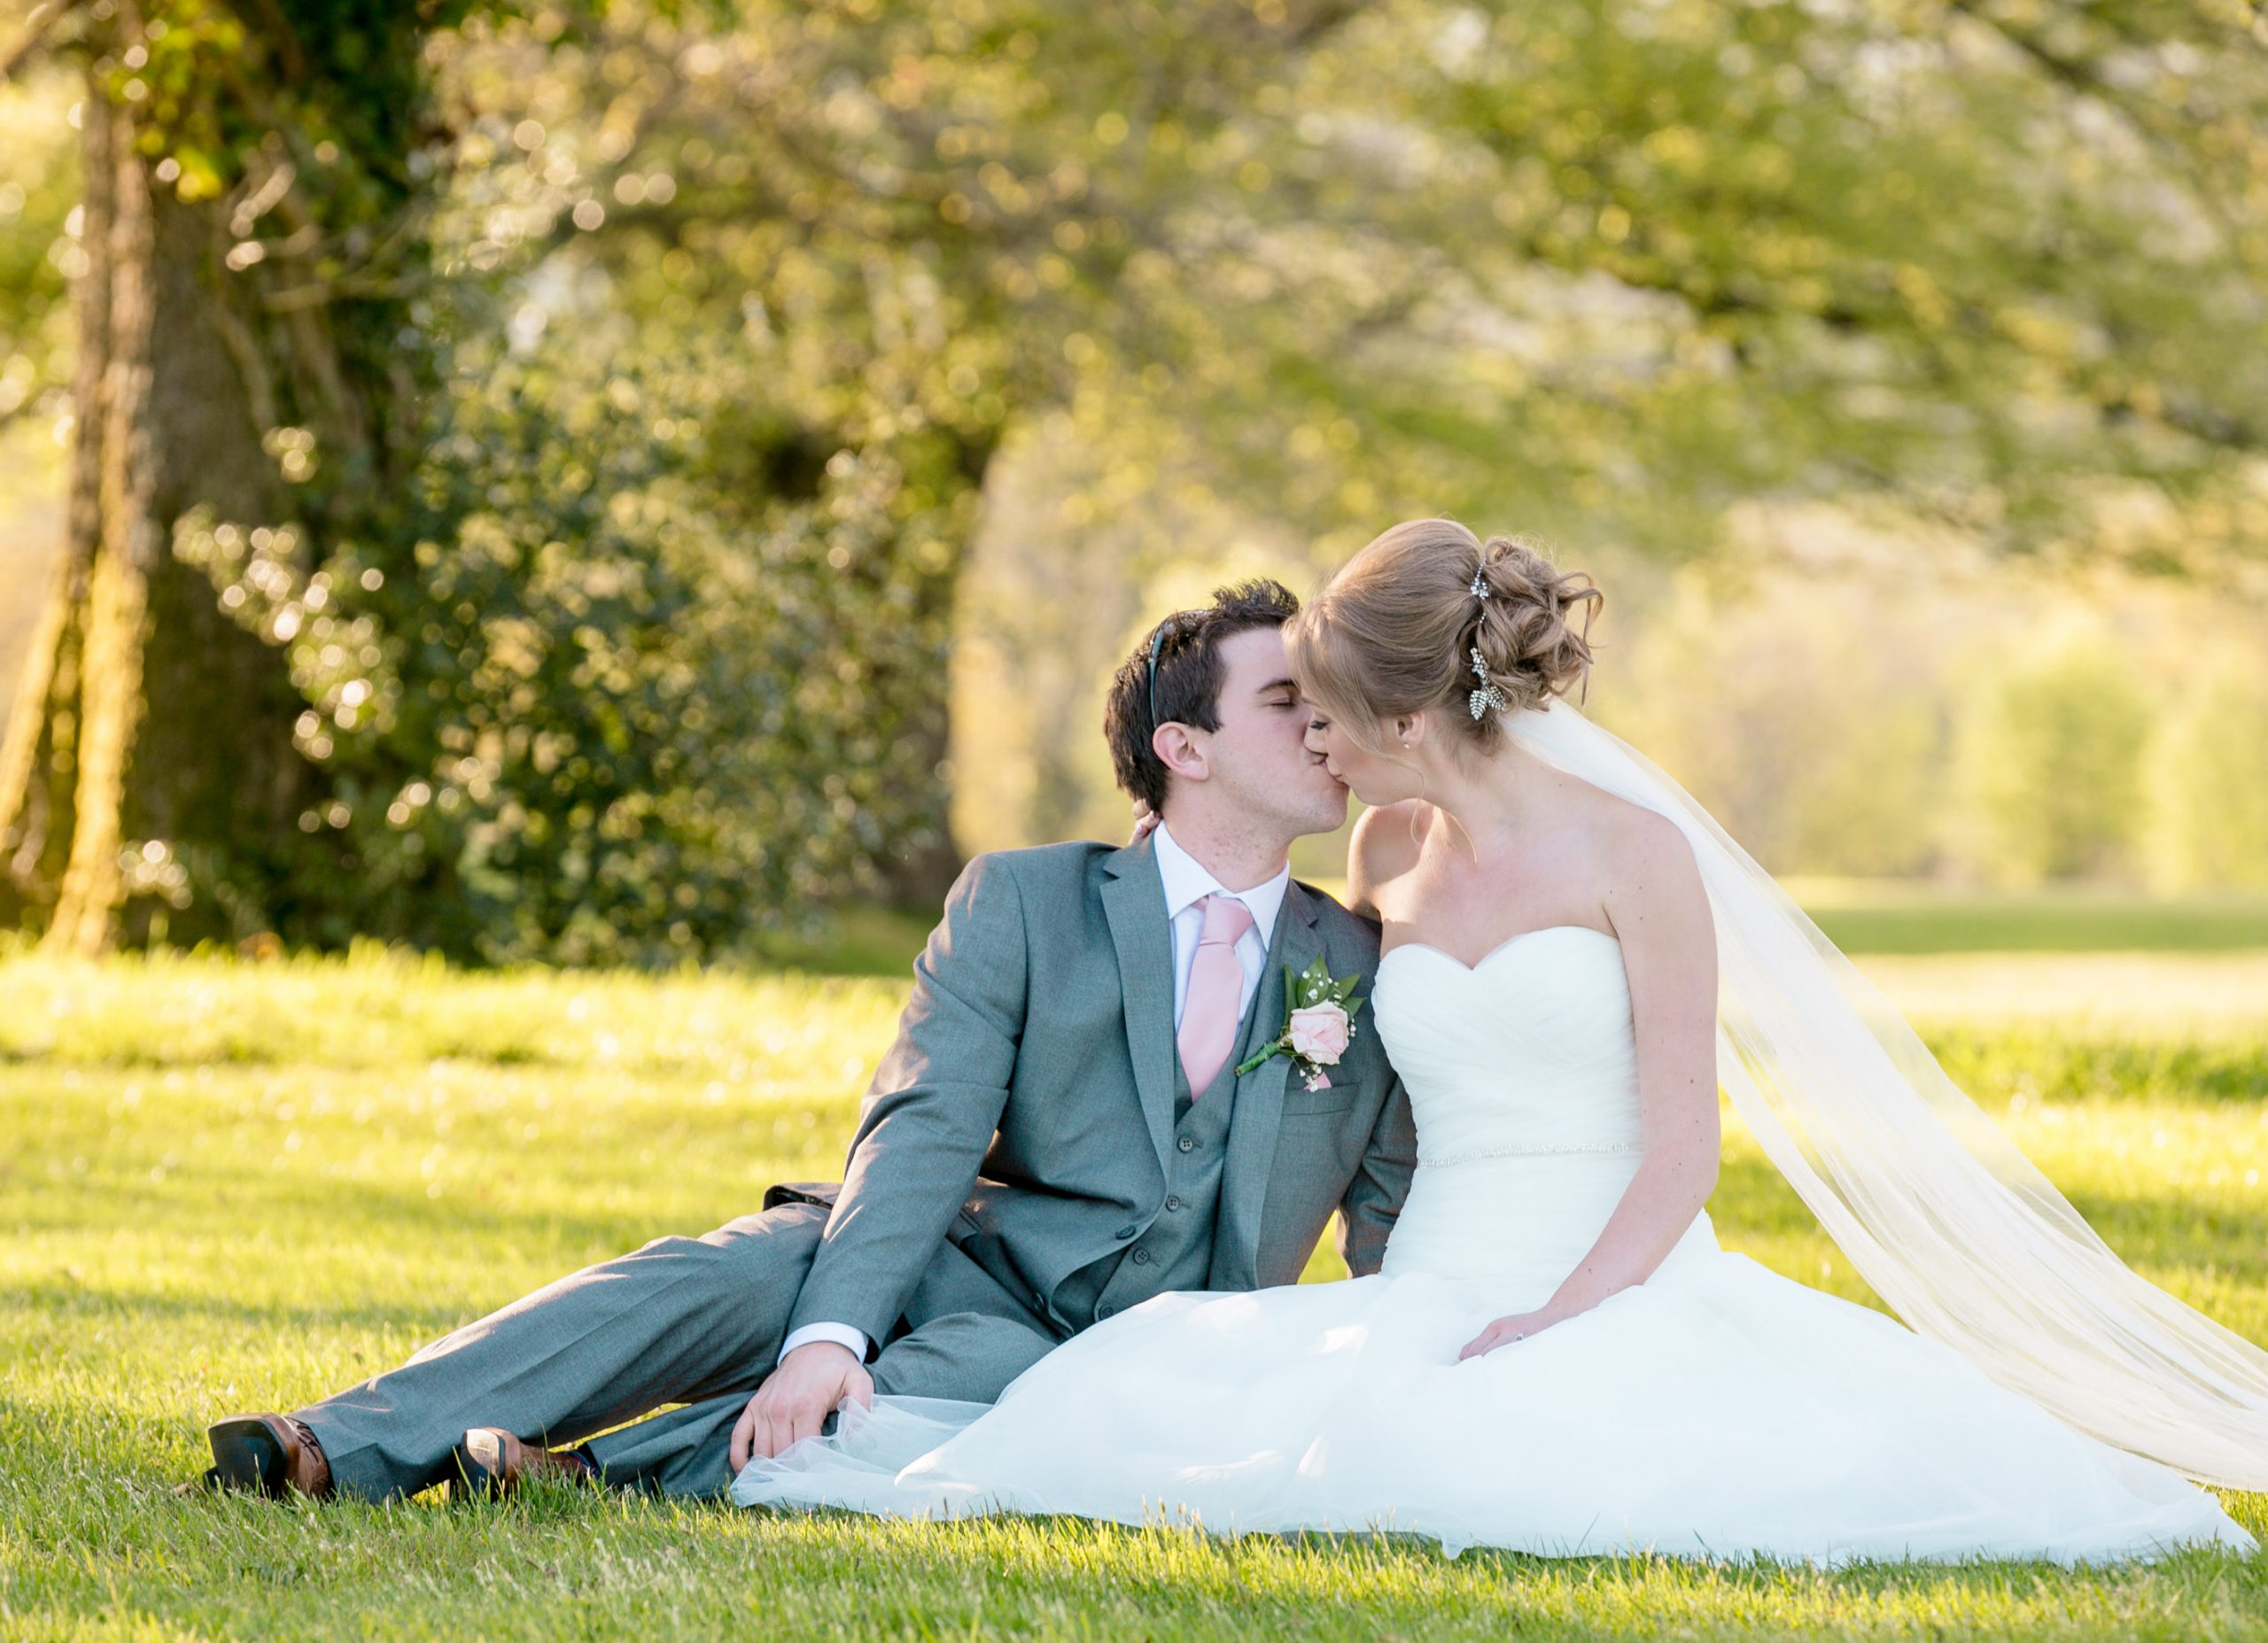 Wedding of Katie & Jack at Bryn Meadows, Tania Miller Photography, Pontypool Wedding Photographer